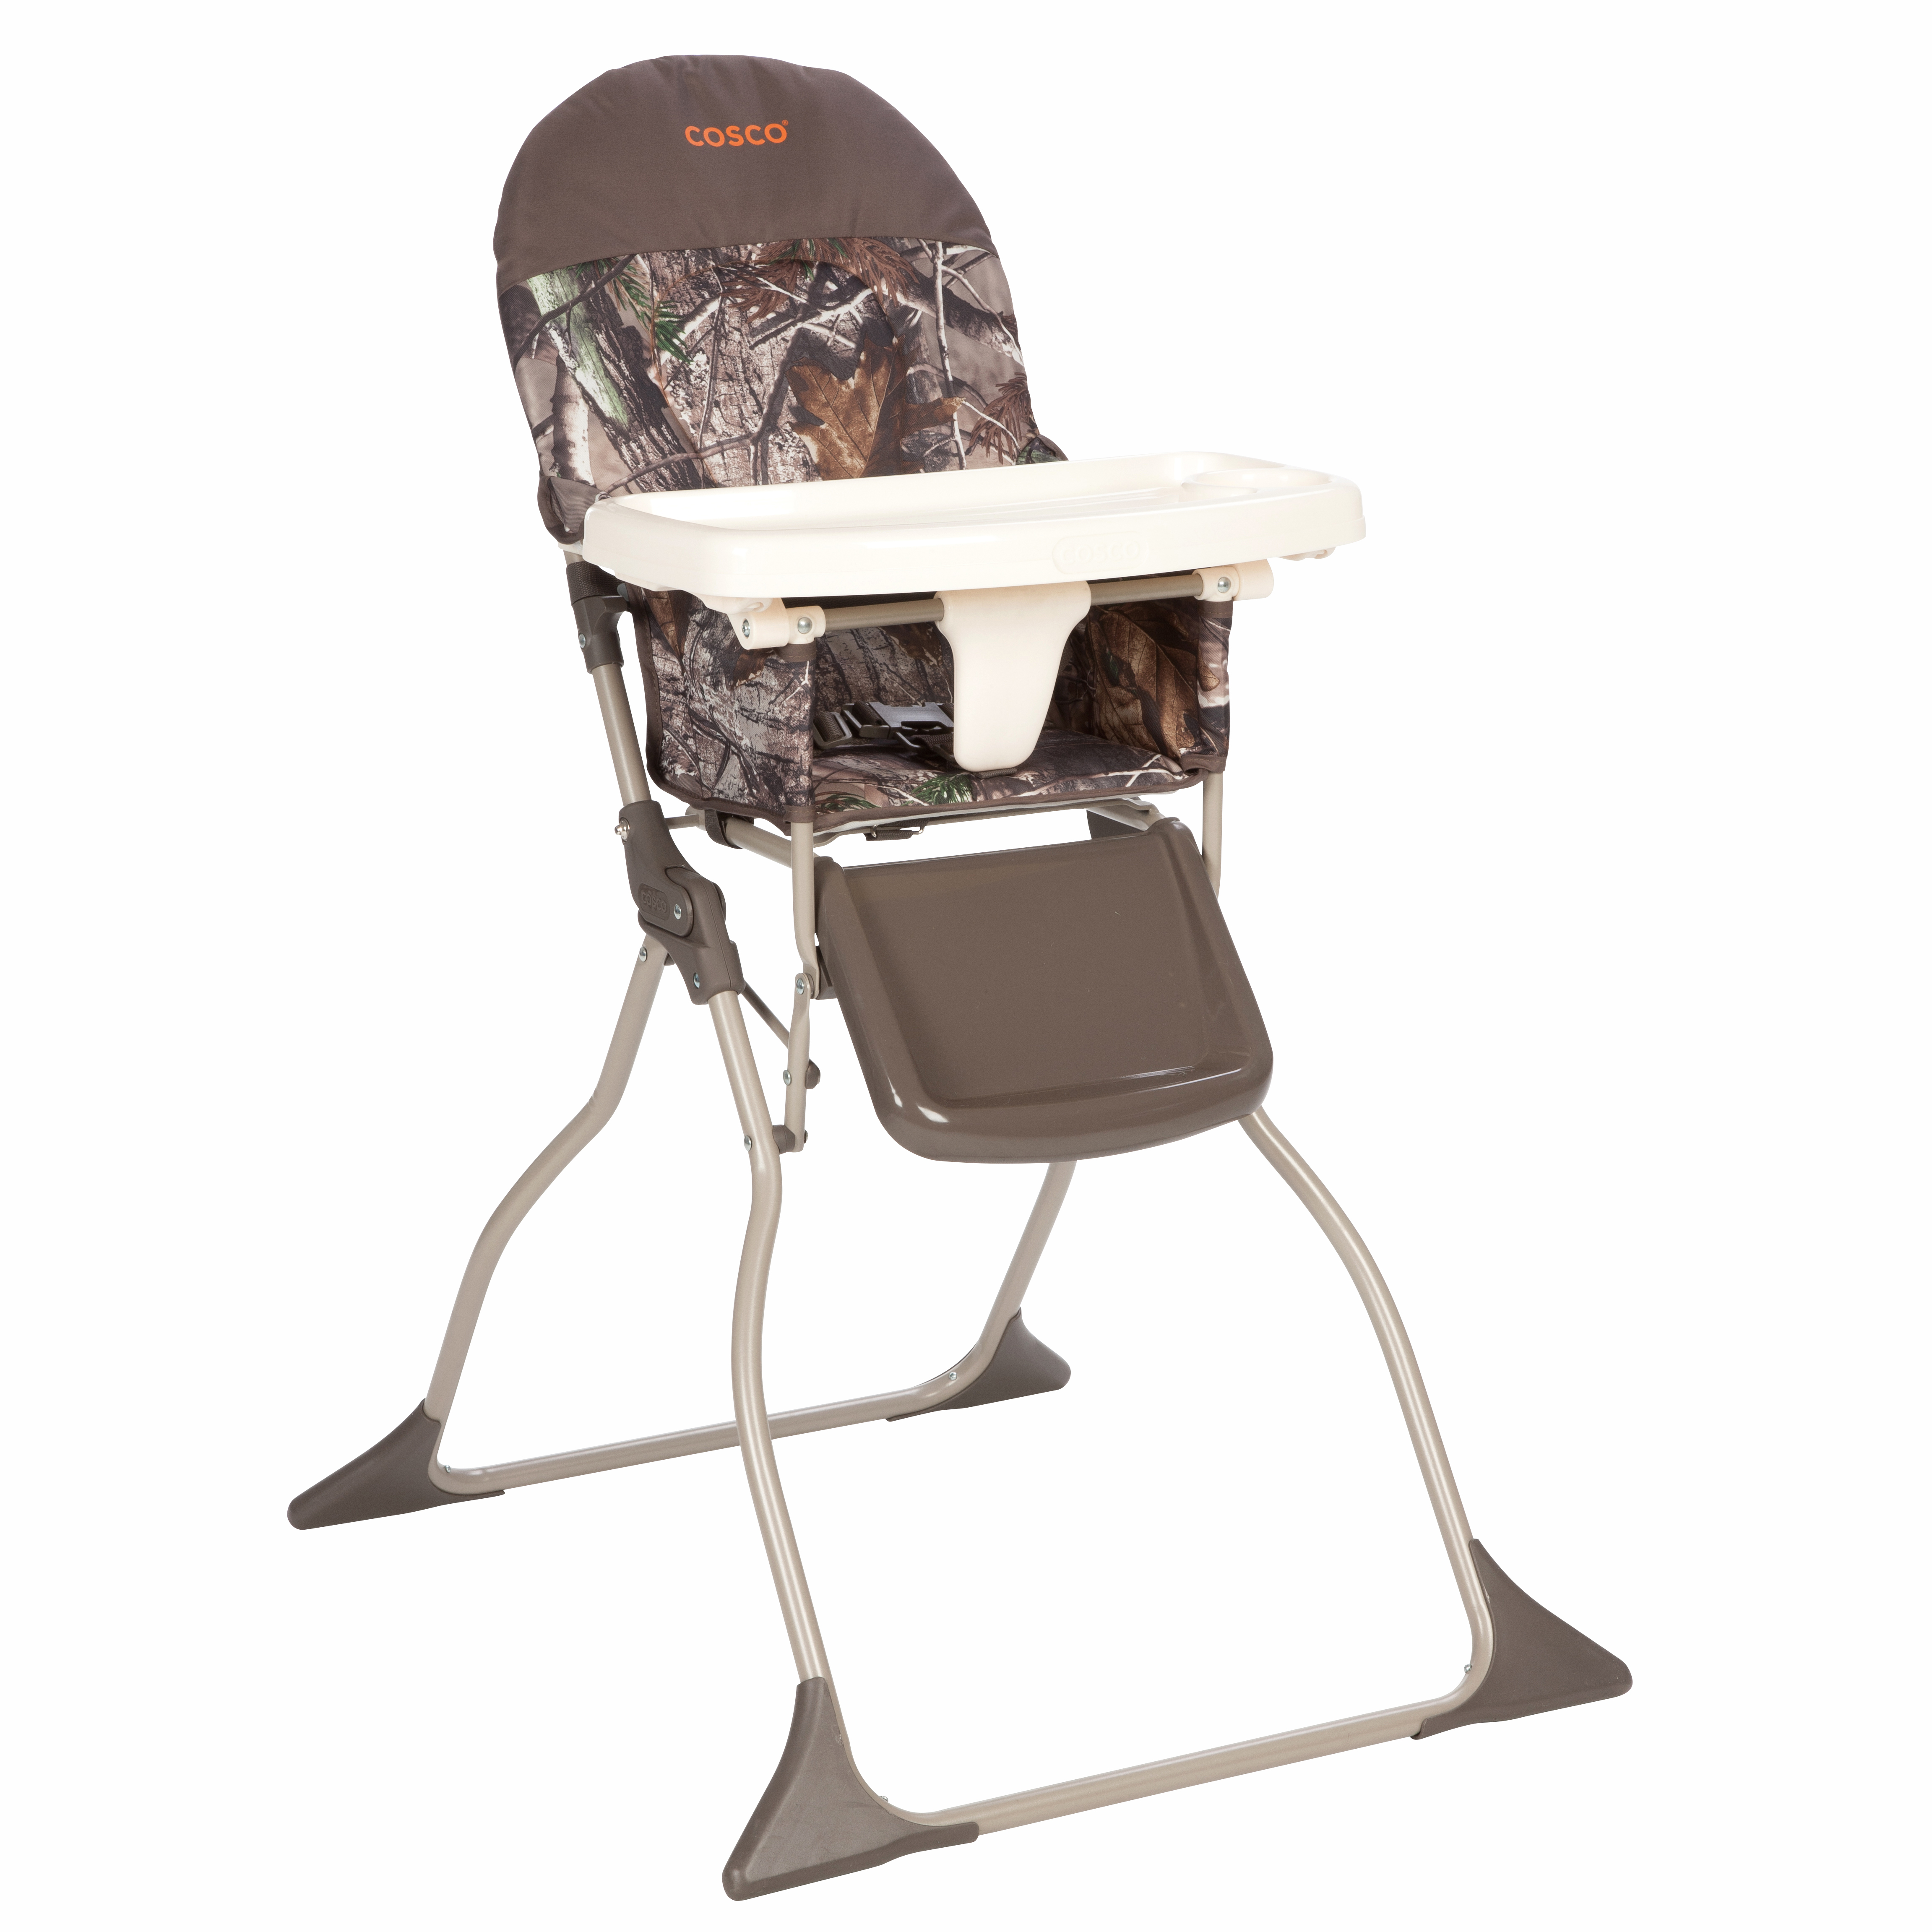 Cosco Baby Toddler Simple Folding Portable High Chair